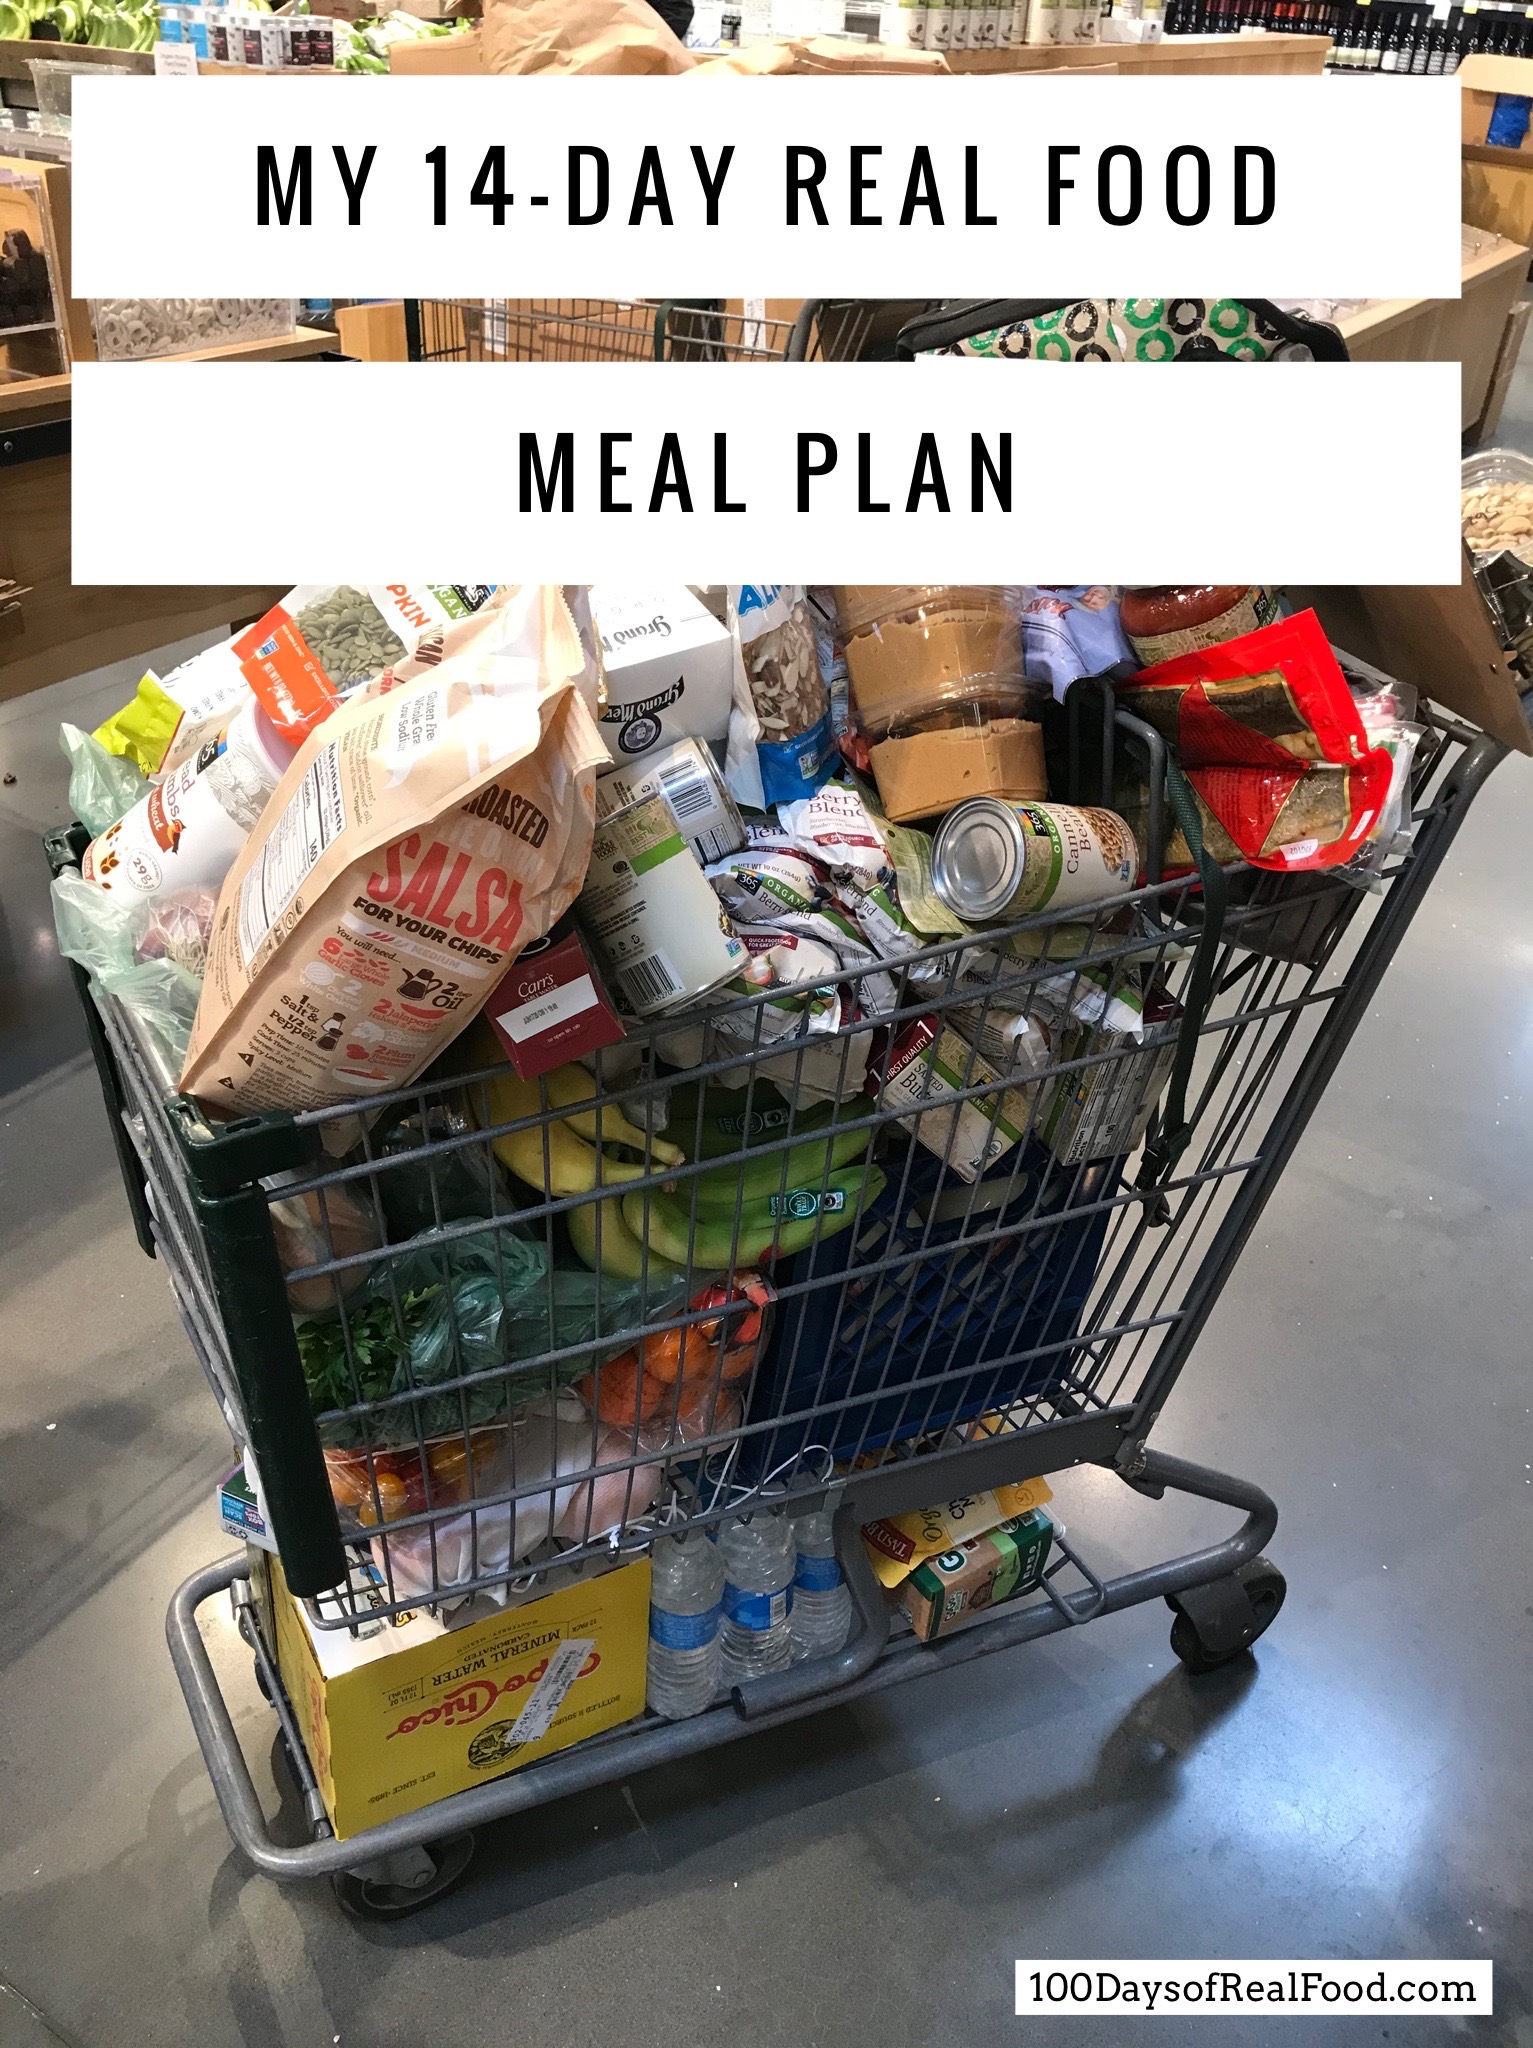 My 14-Day Meal Plan (only shop once!)